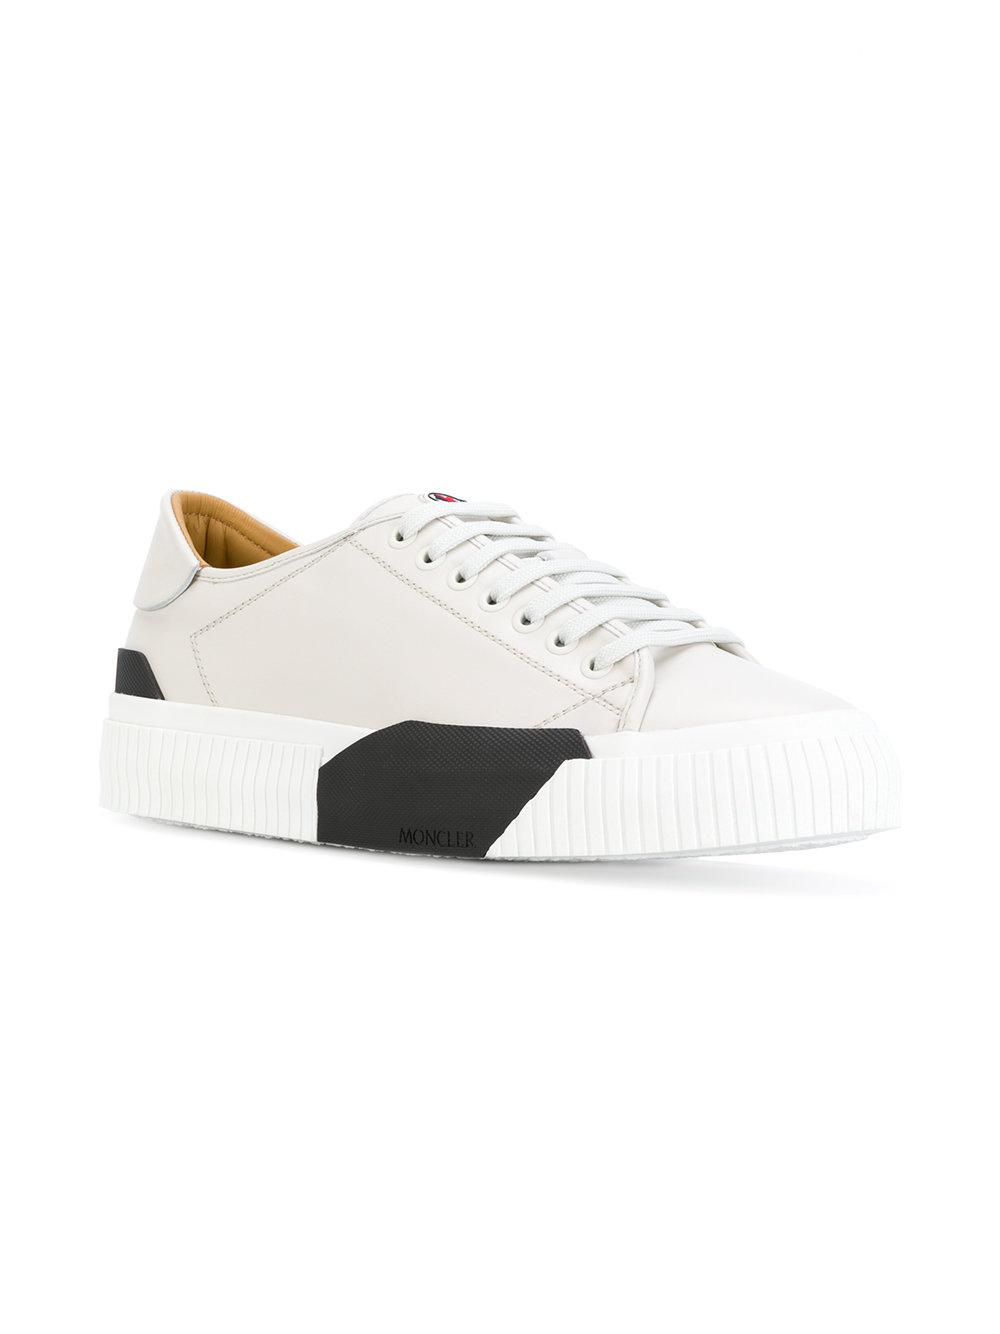 653003a188eb Lyst - Moncler Conrad Platform Sneakers in White for Men